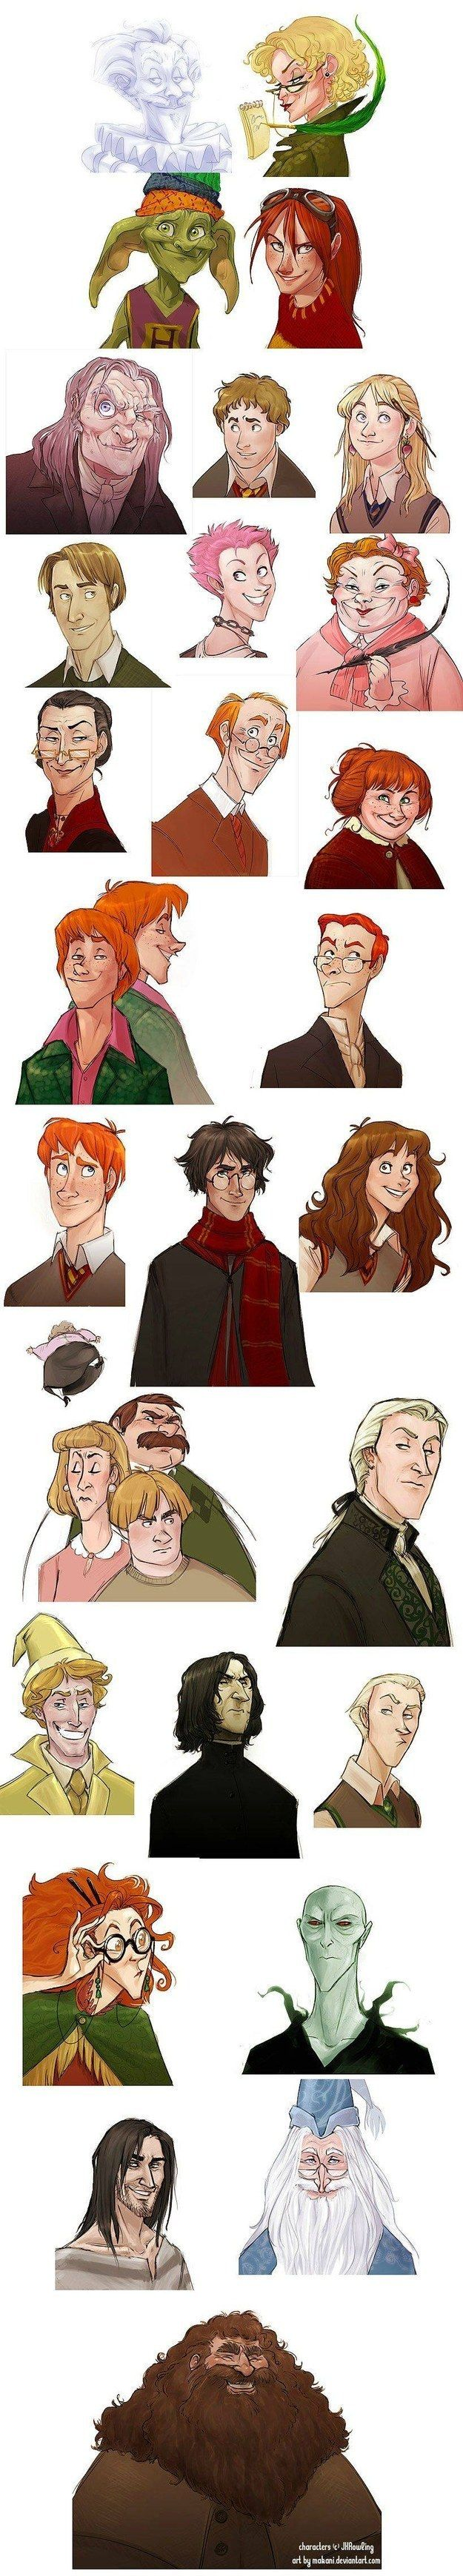 Disney + Harry Potter   44 Ultimate Disney Mashups You Need In Your Life